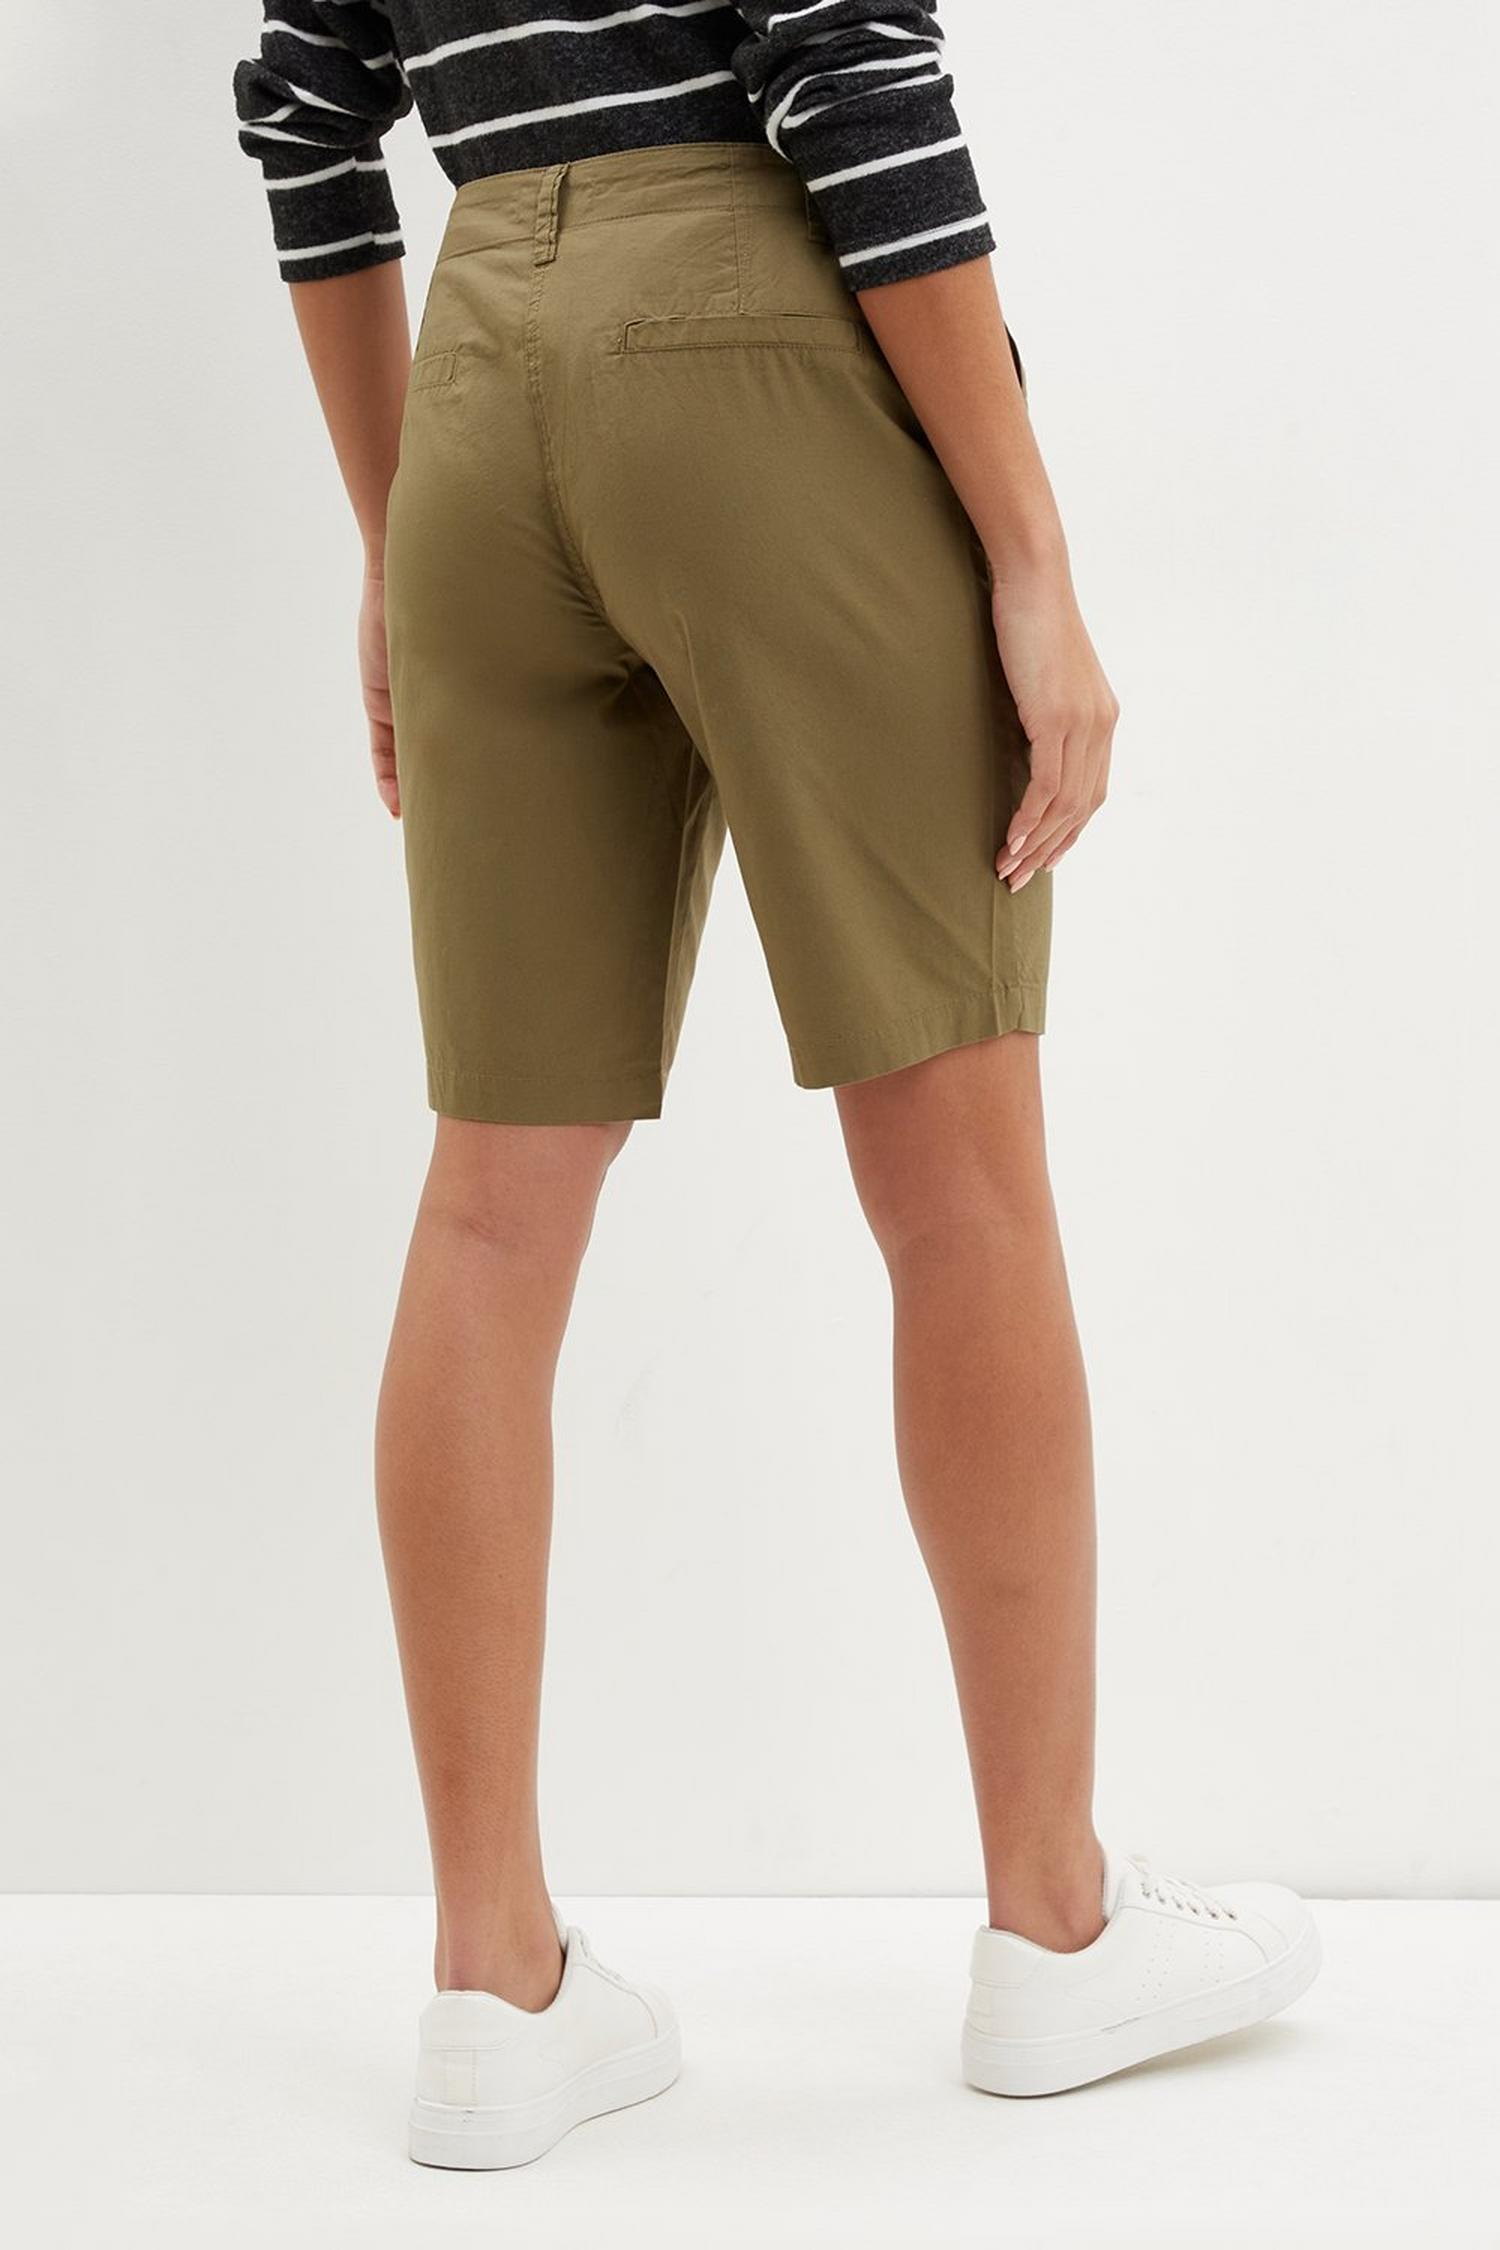 130 Khaki Poplin Knee Shorts image number 3